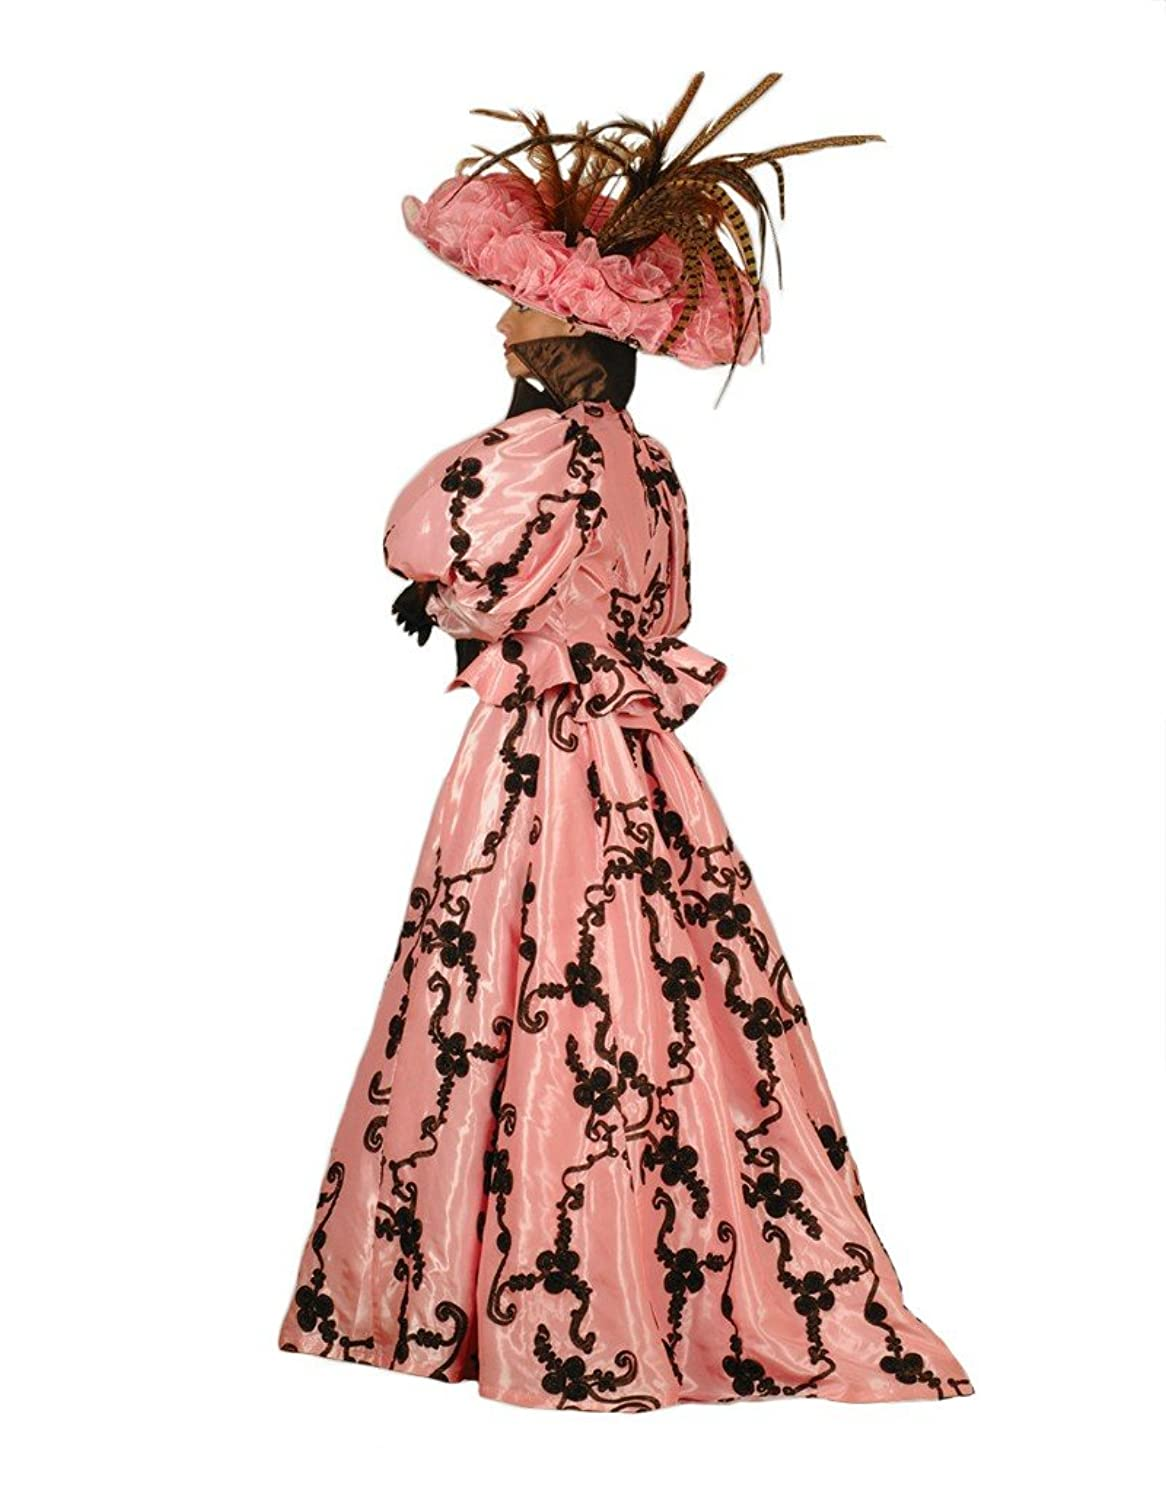 Victorian Costume Dresses & Skirts for Sale Womens Lacey Victorian Theater Costume Dress $389.99 AT vintagedancer.com